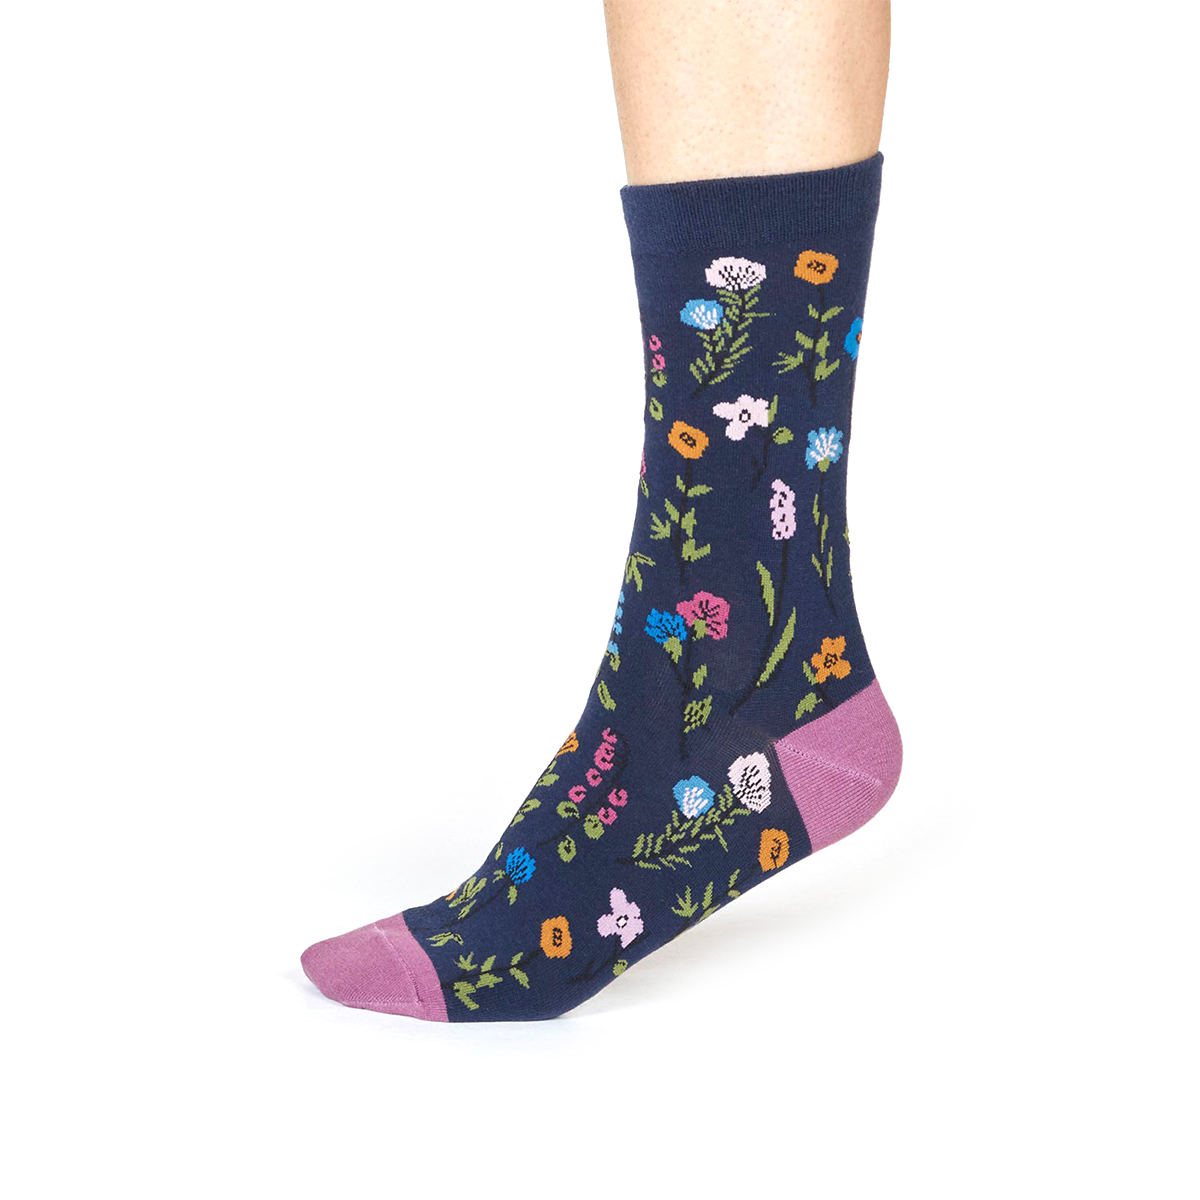 Navy floral socks by Thought Socks